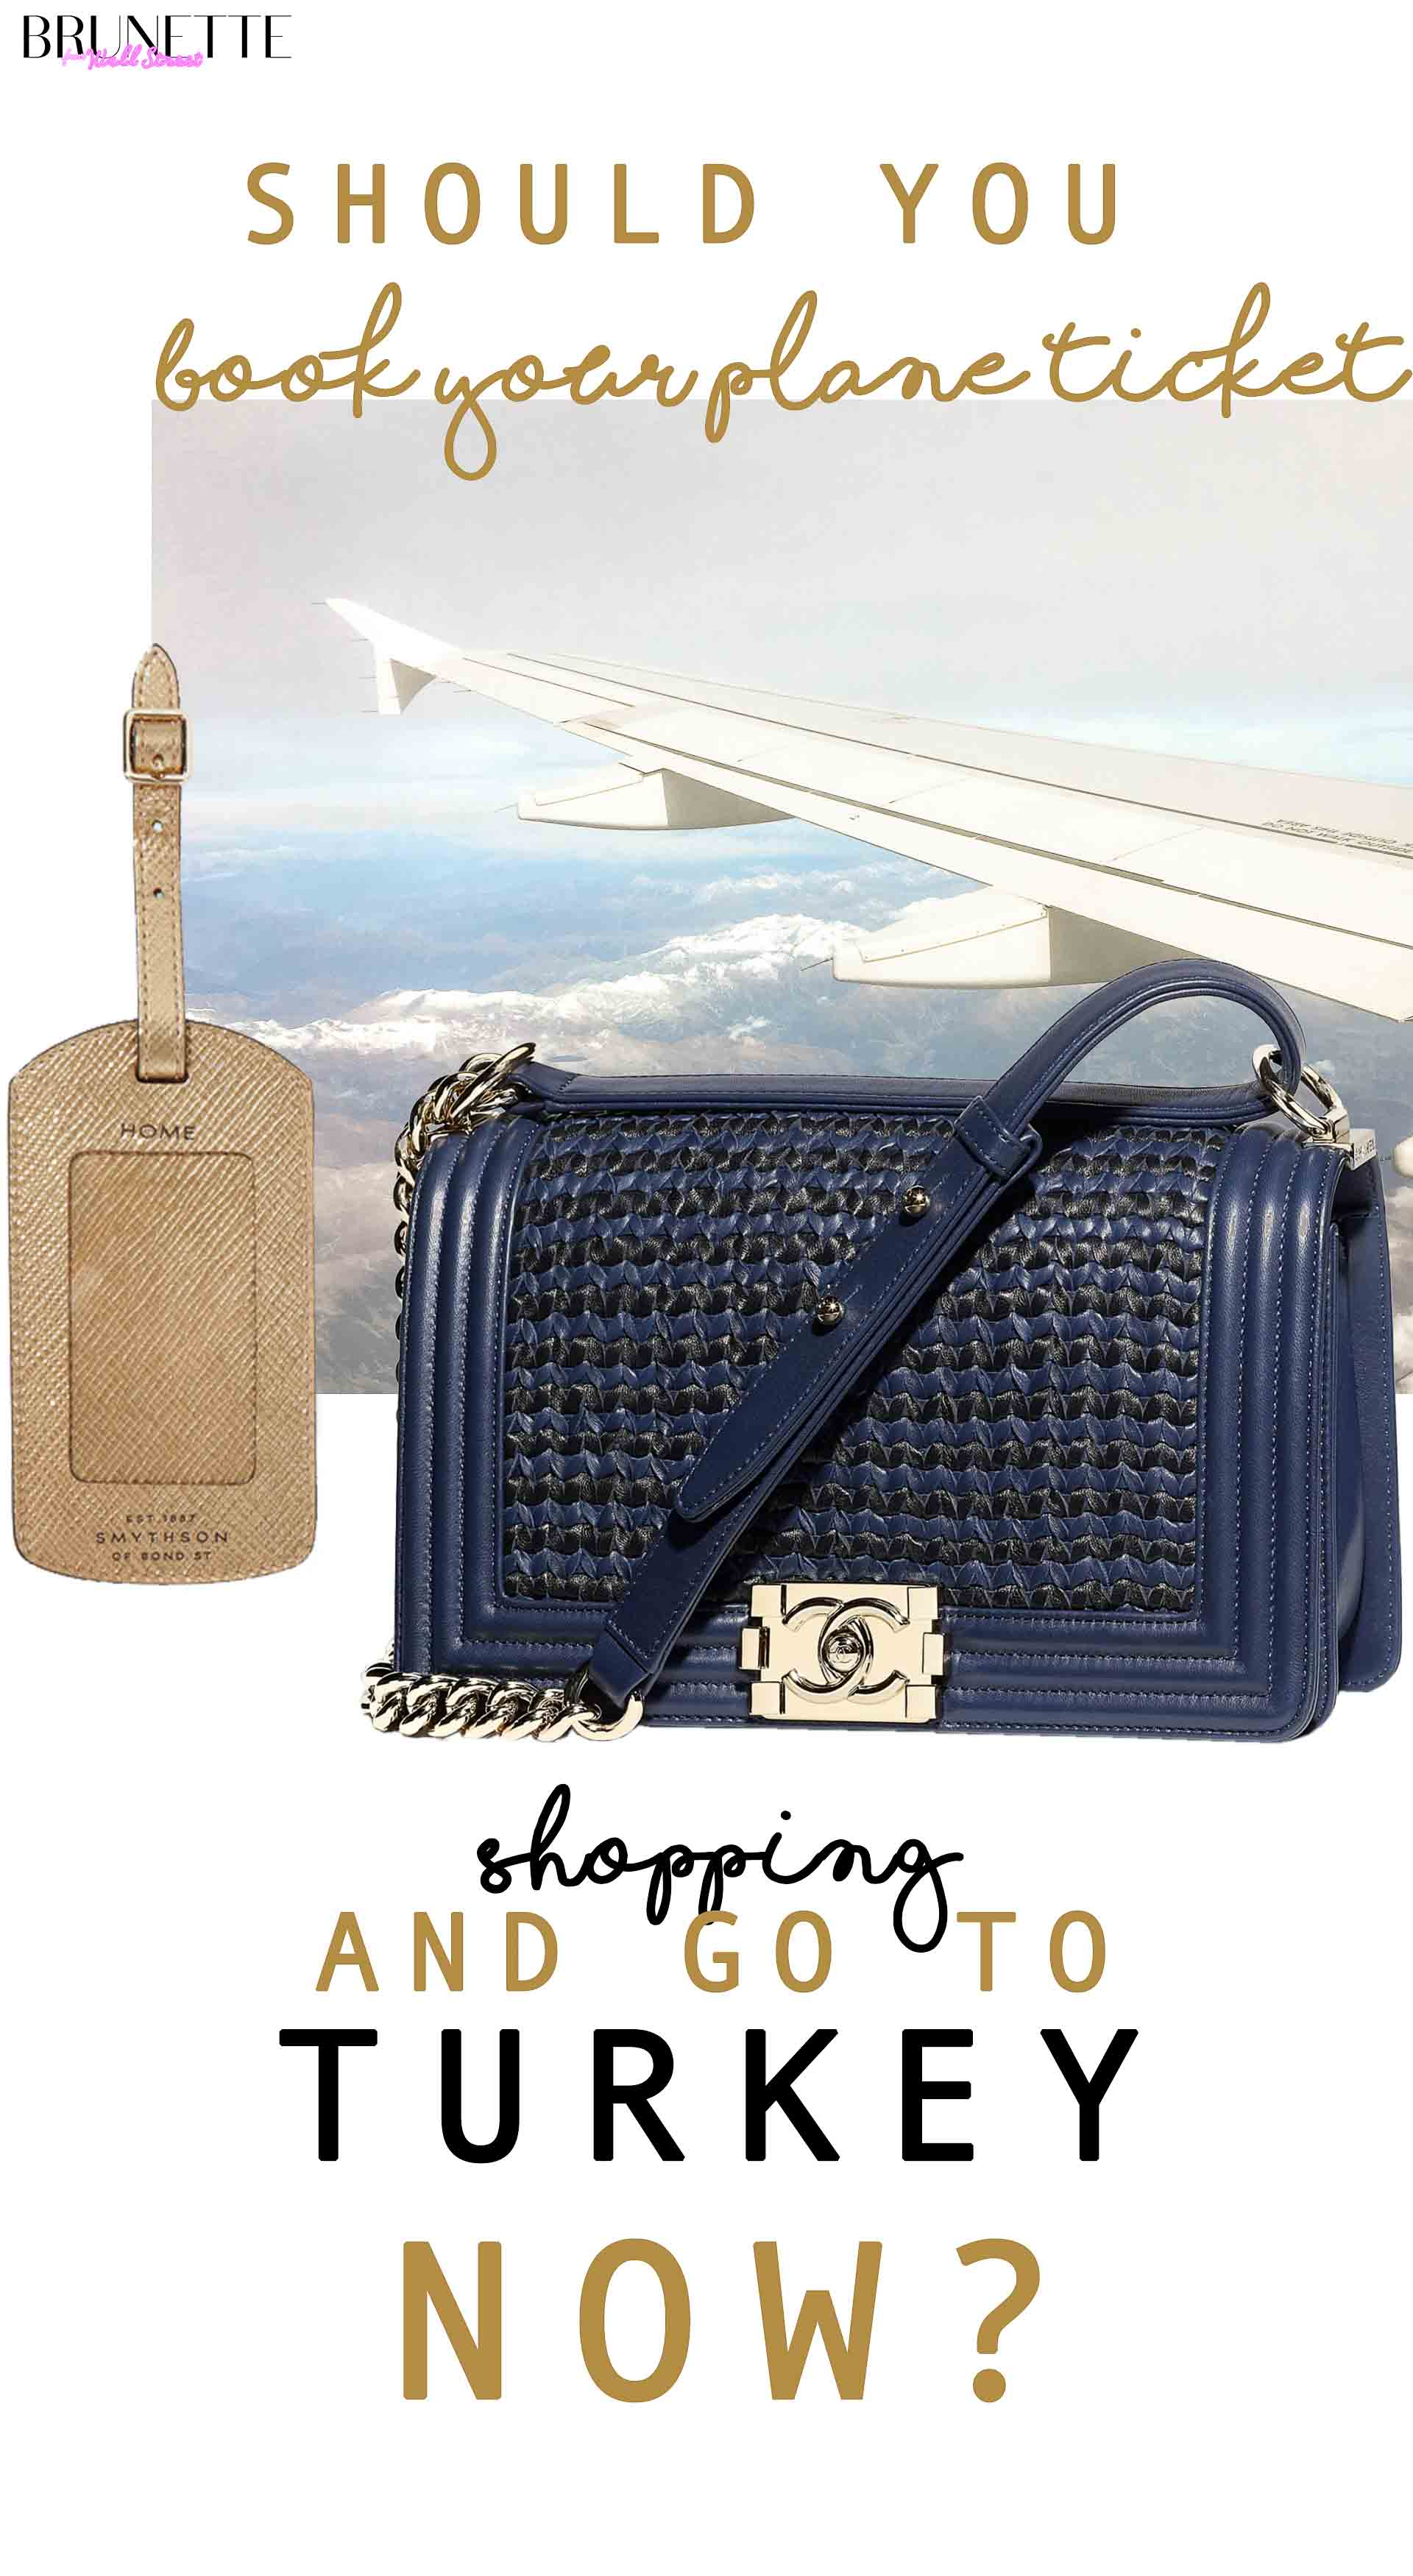 blue navy Chanel boy bag with text overlay Should you book your plane ticket ang go shopping to turkey now